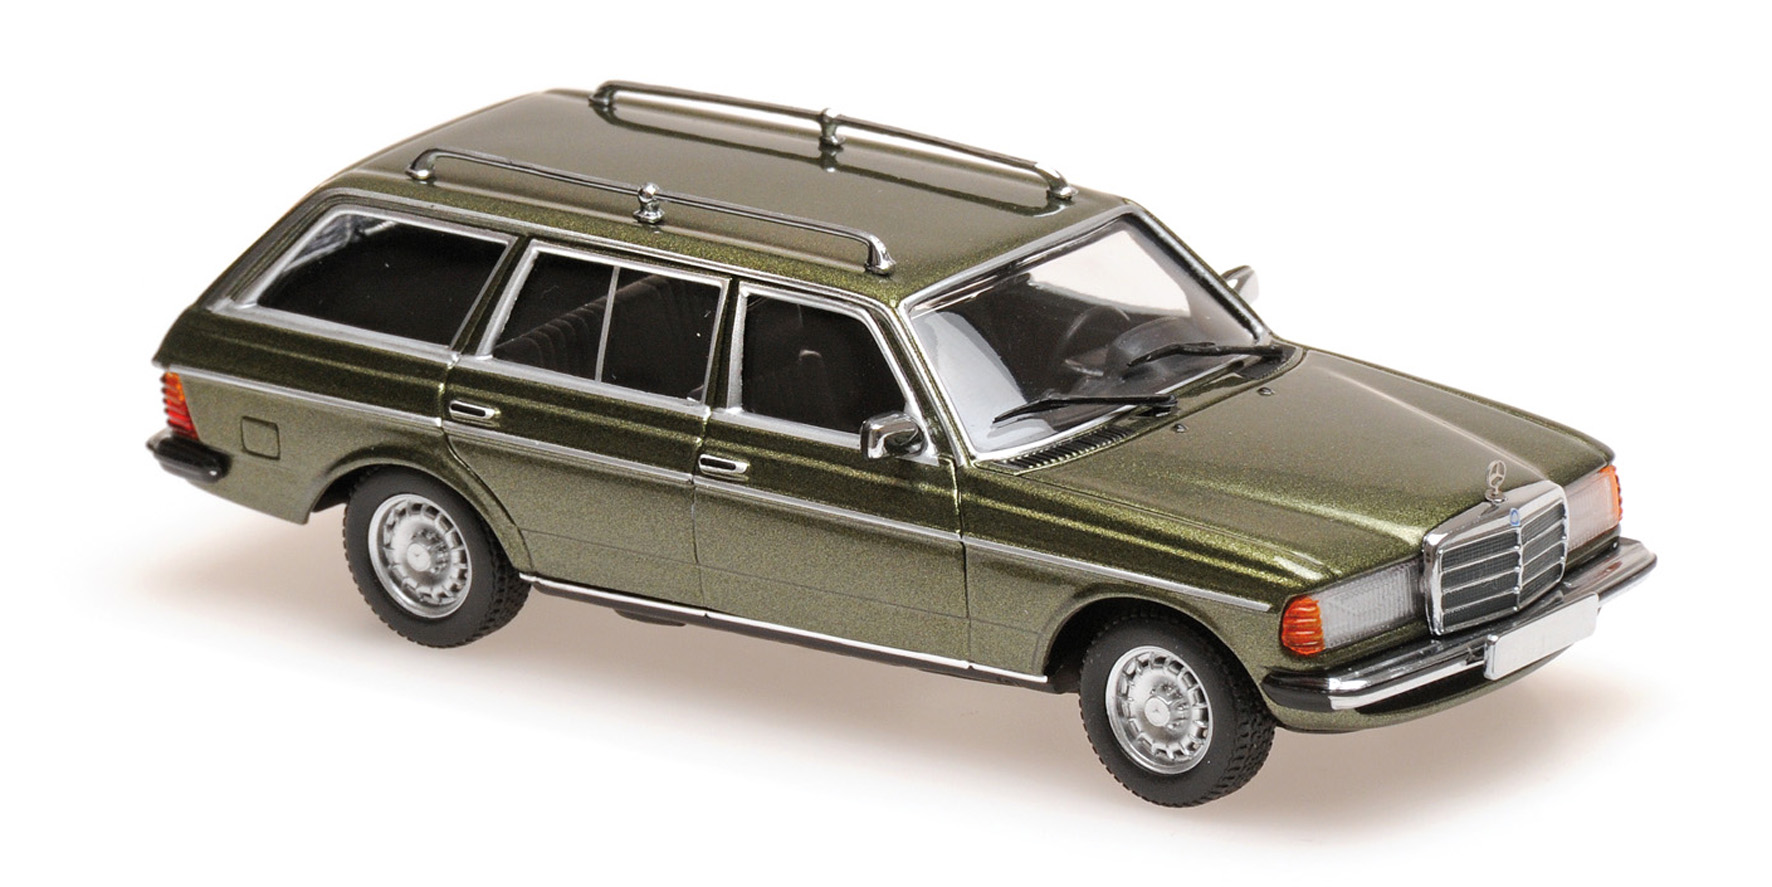 Mercedes-Benz 230TE (W123) 1982 Green Metallic